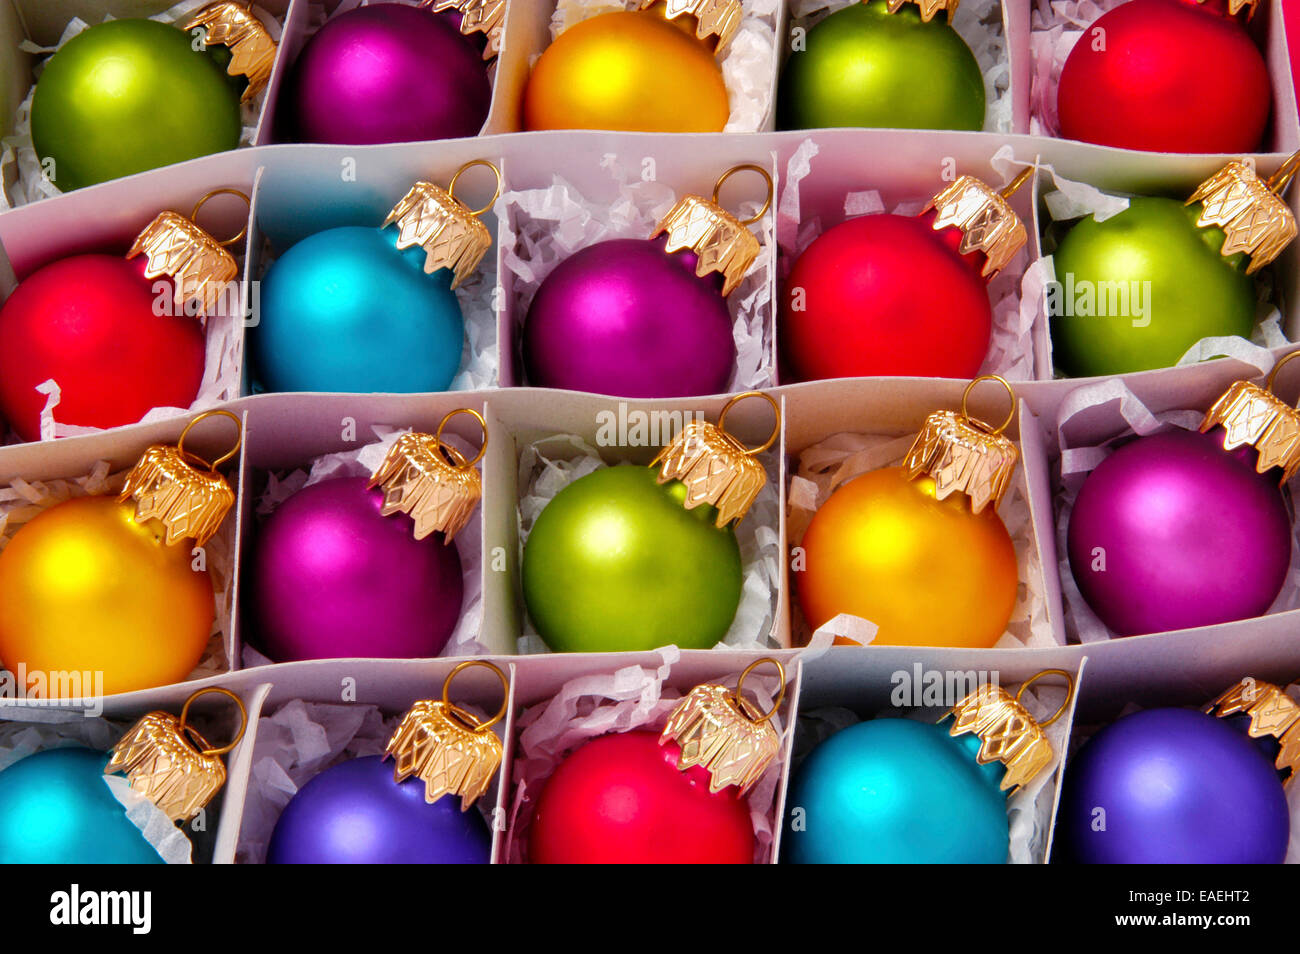 Christmas Ornaments Close up of a box of brightly colored glass ...